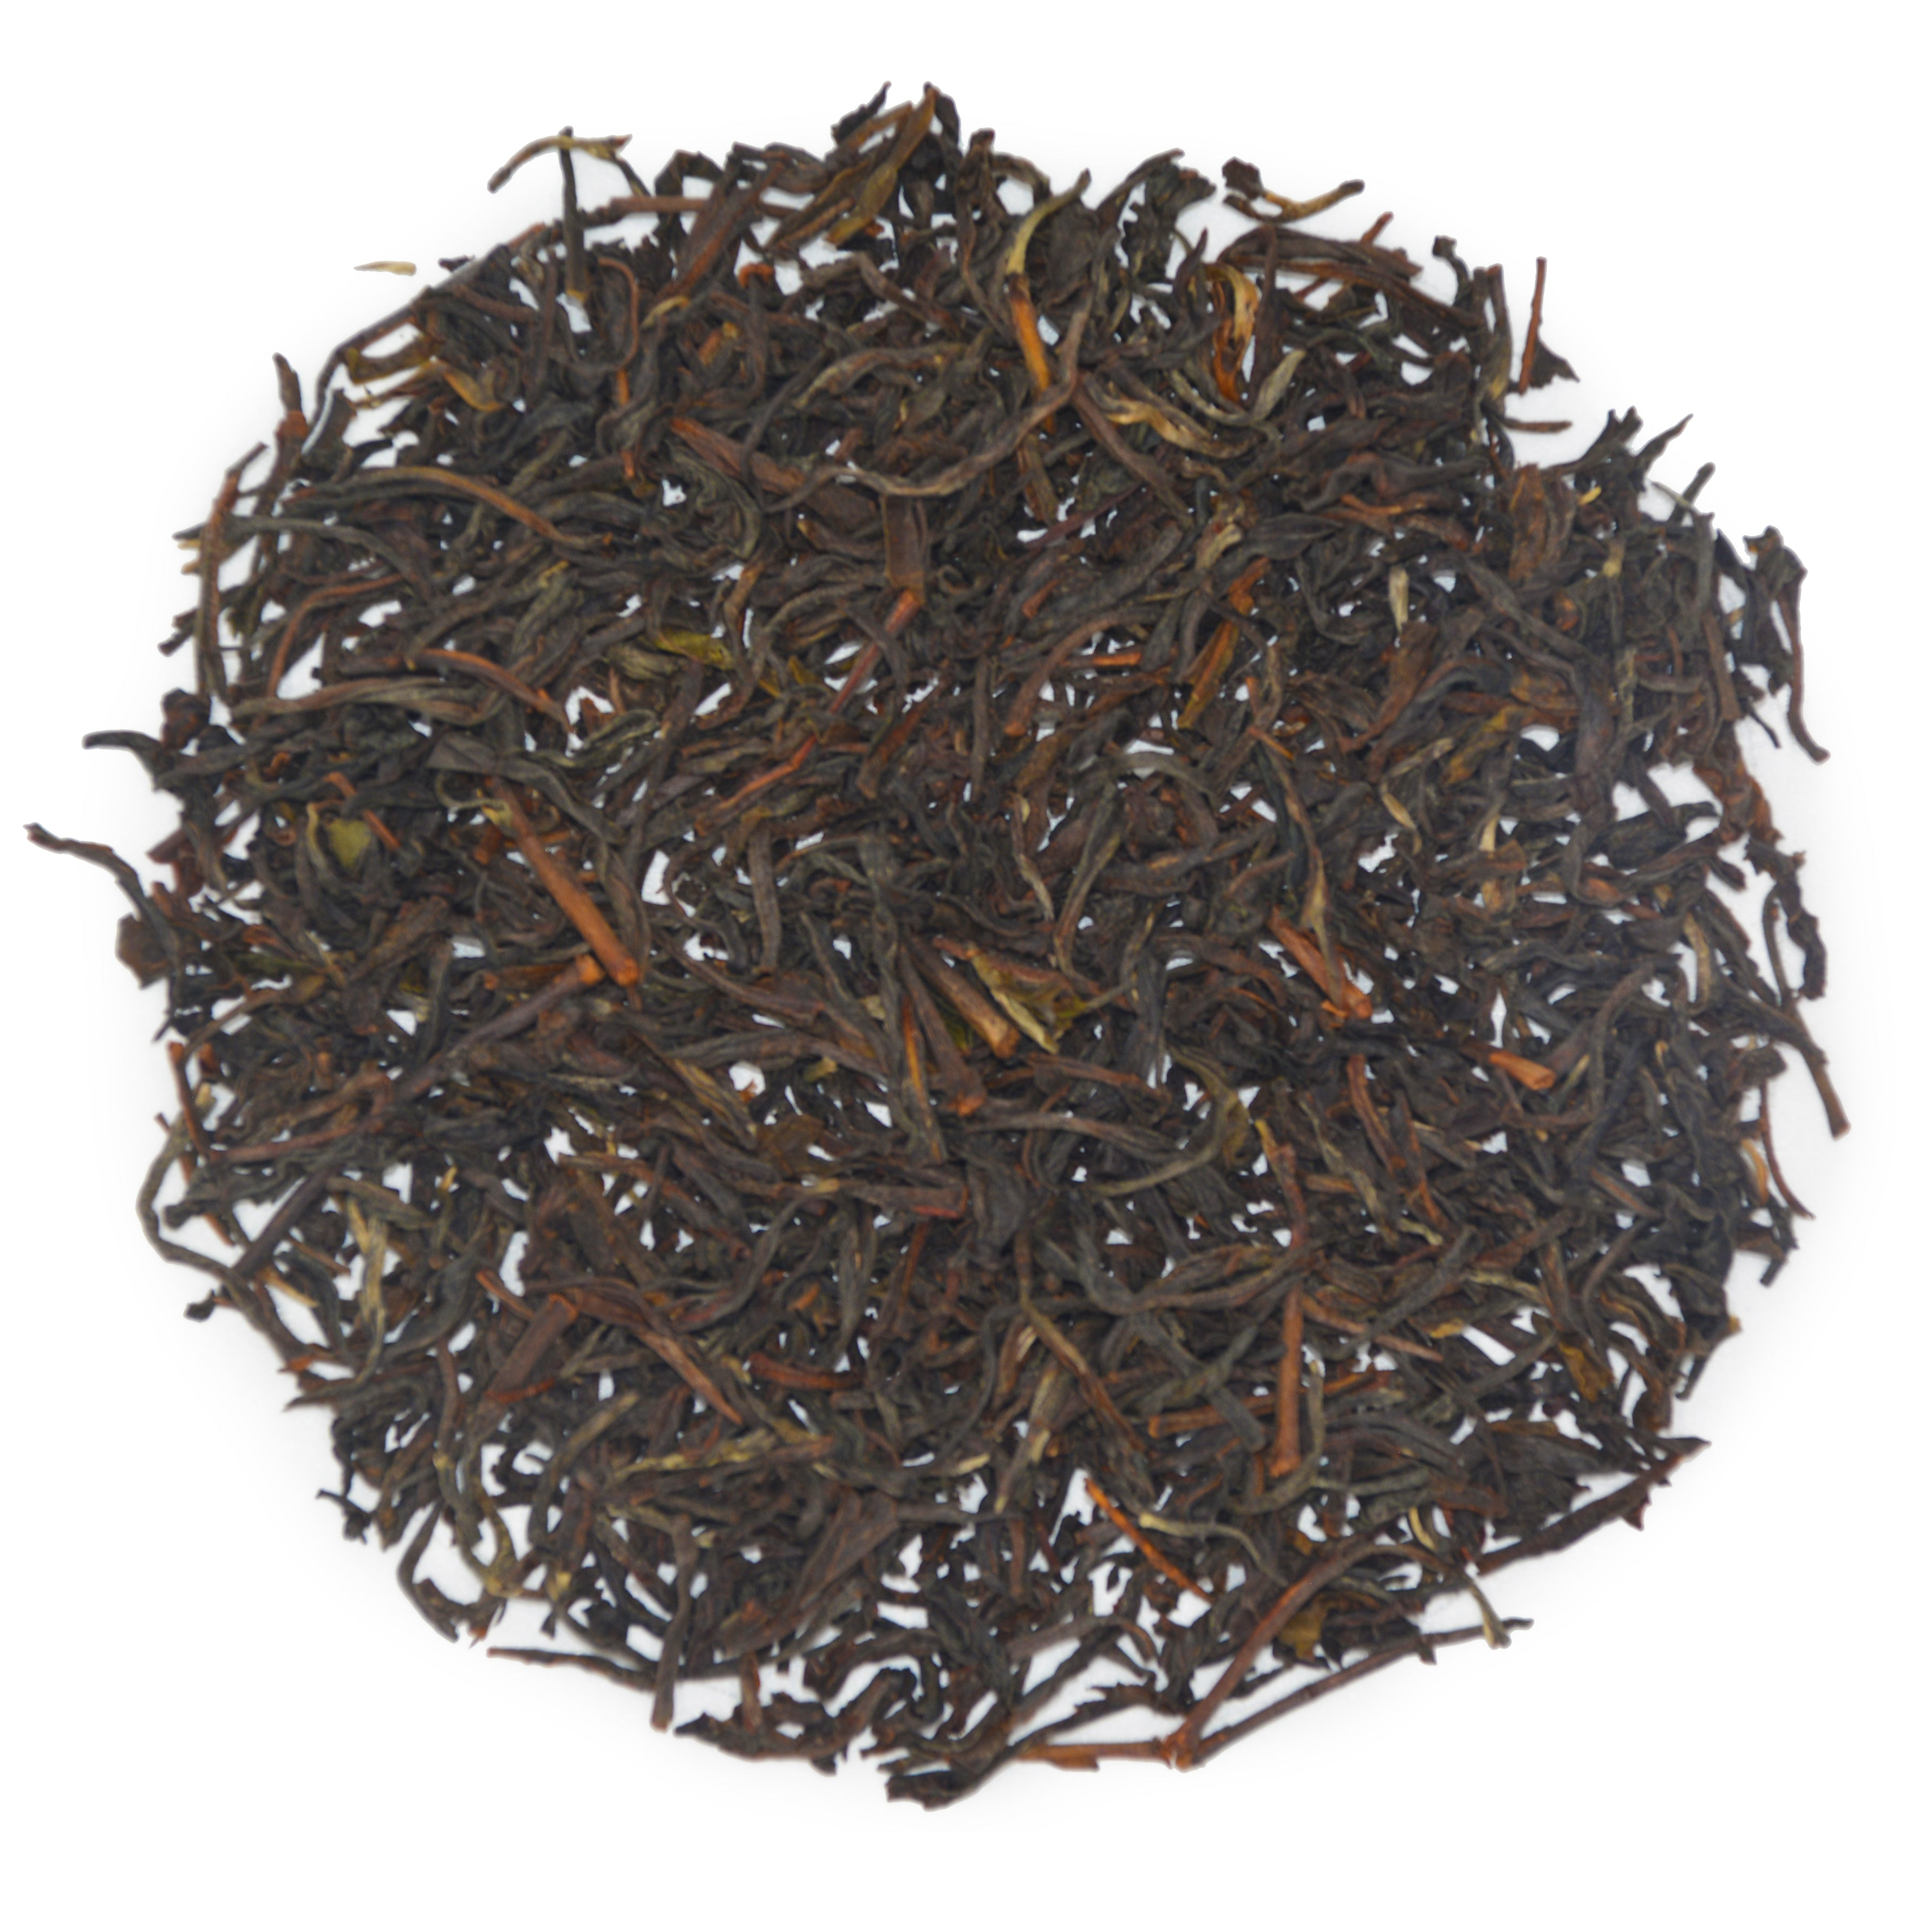 Glendale Estate's wiry, tightly rolled, Winter Flush black tea.